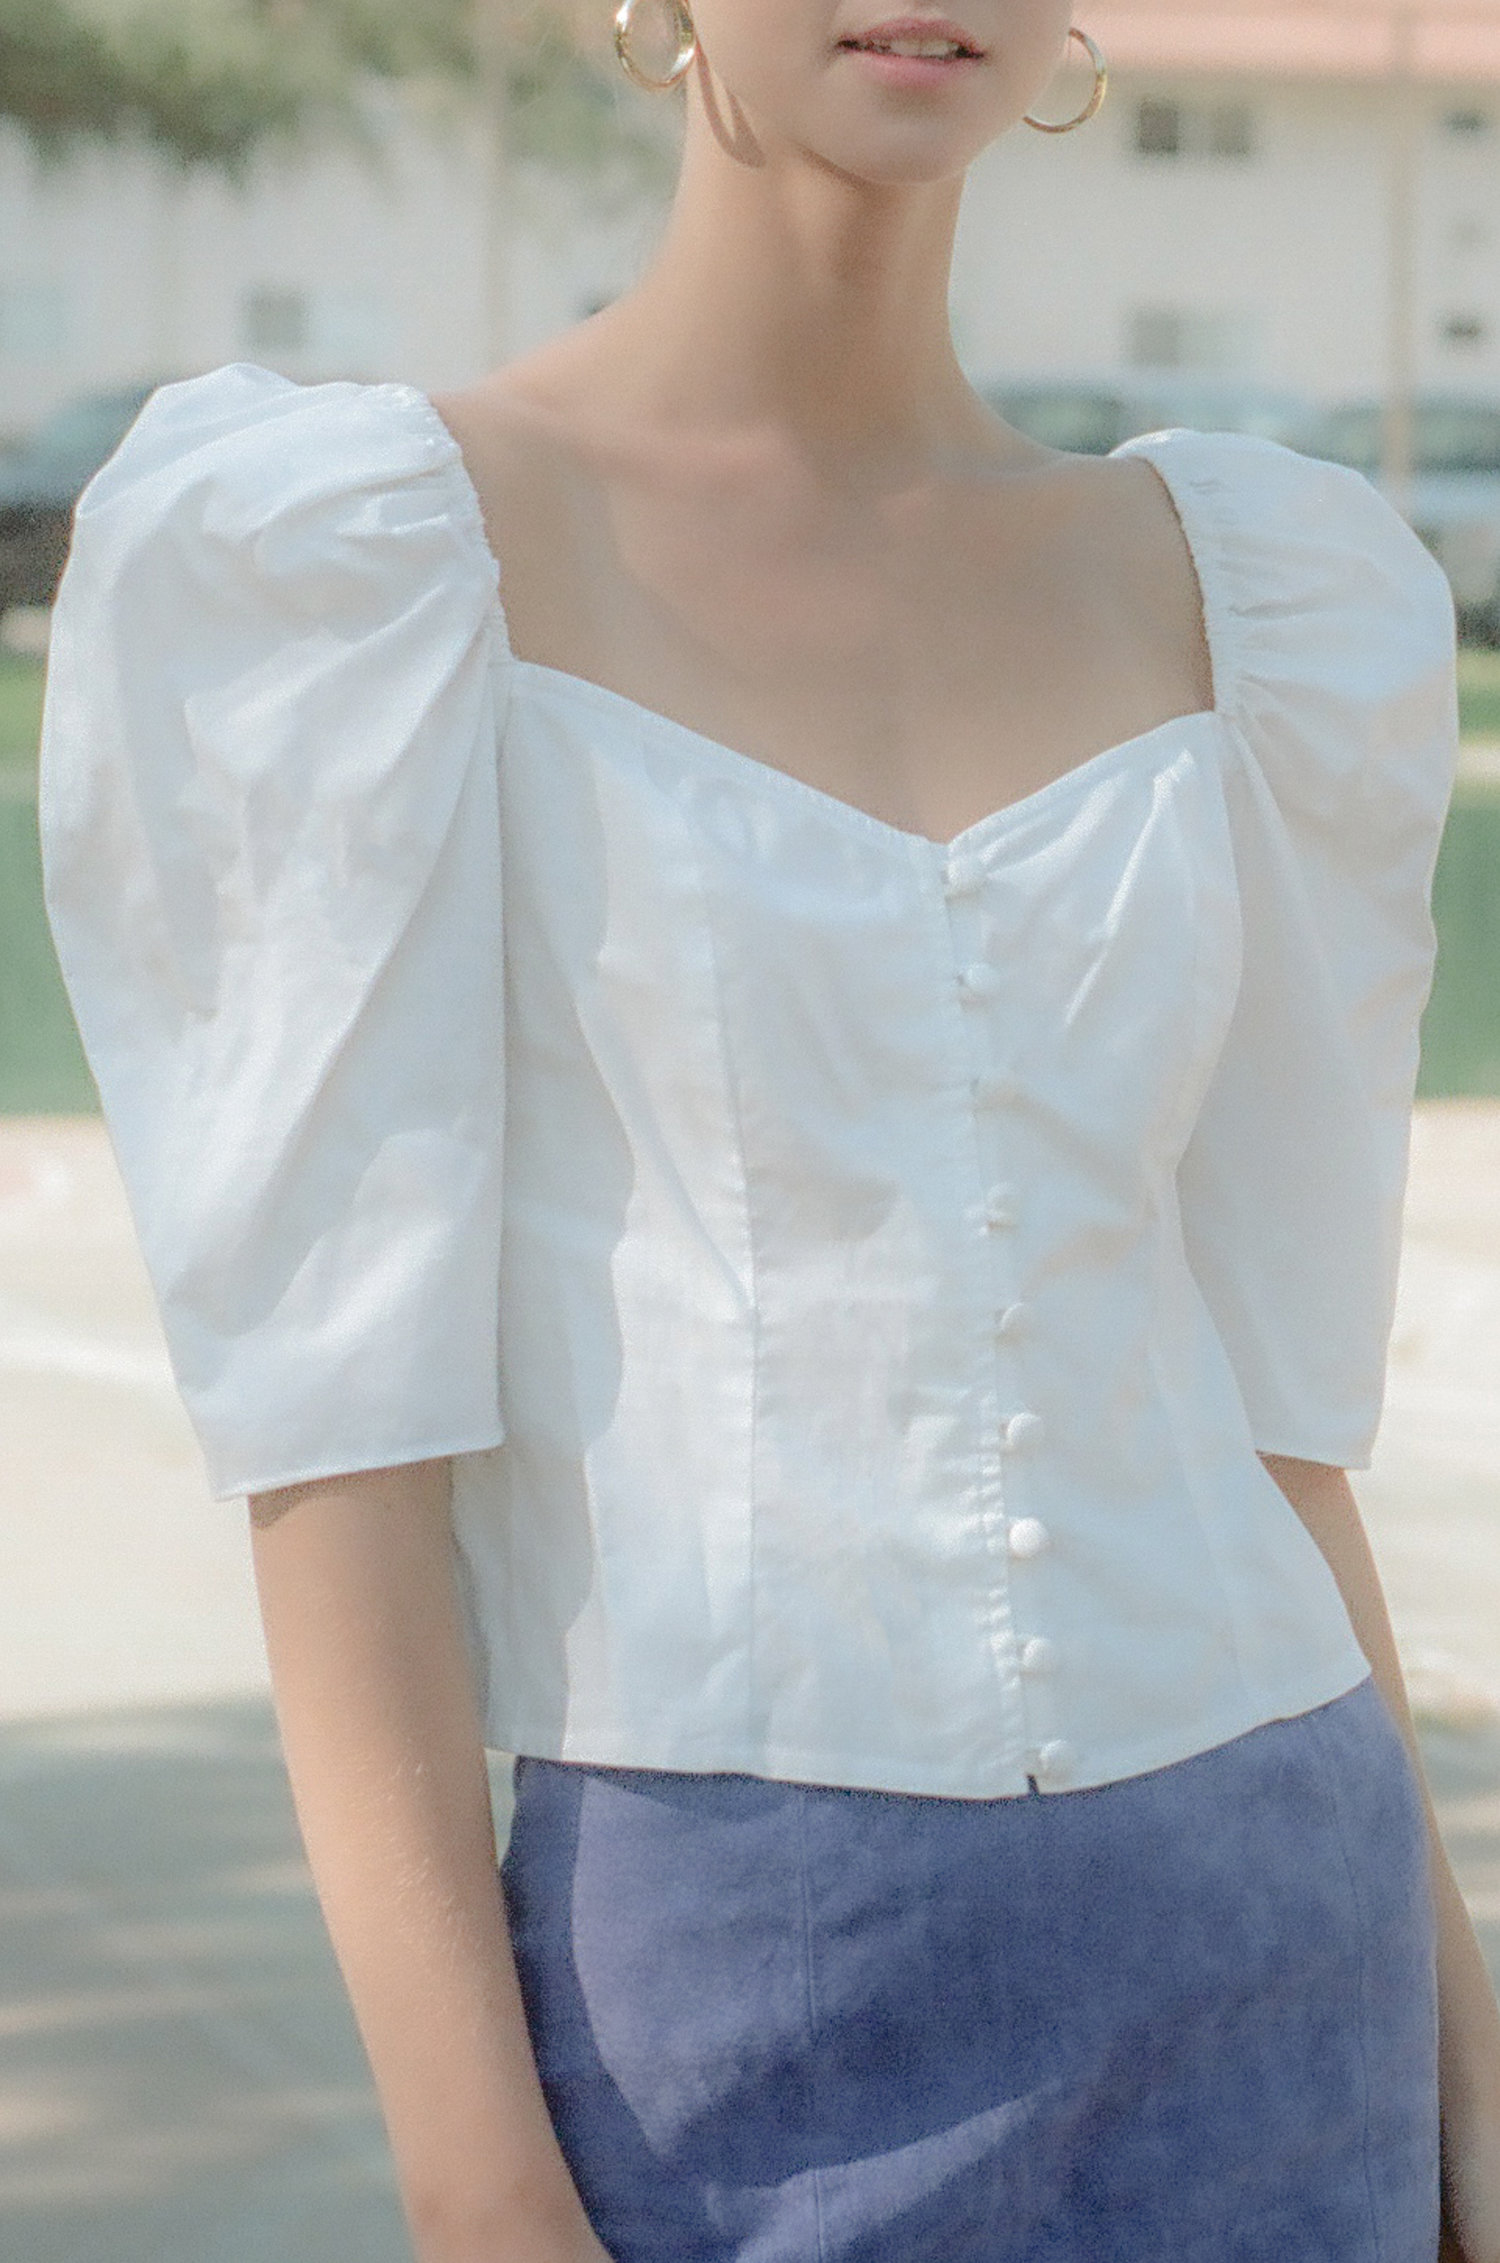 Violette Blouse in White $189